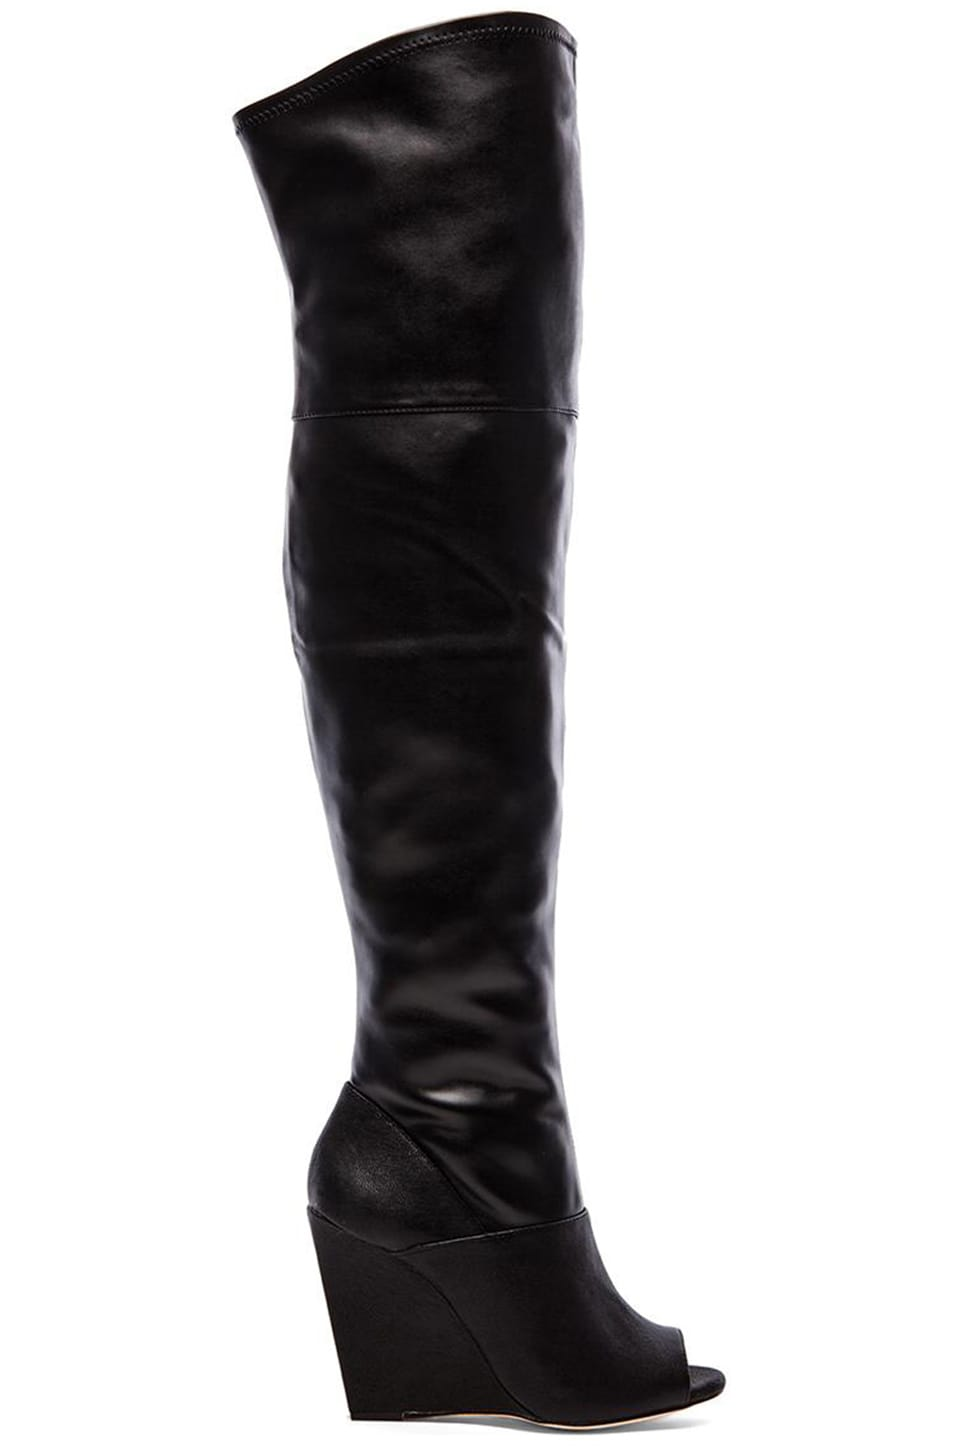 BCBGMAXAZRIA Gian Open Toe Over The Knee Boots in Black